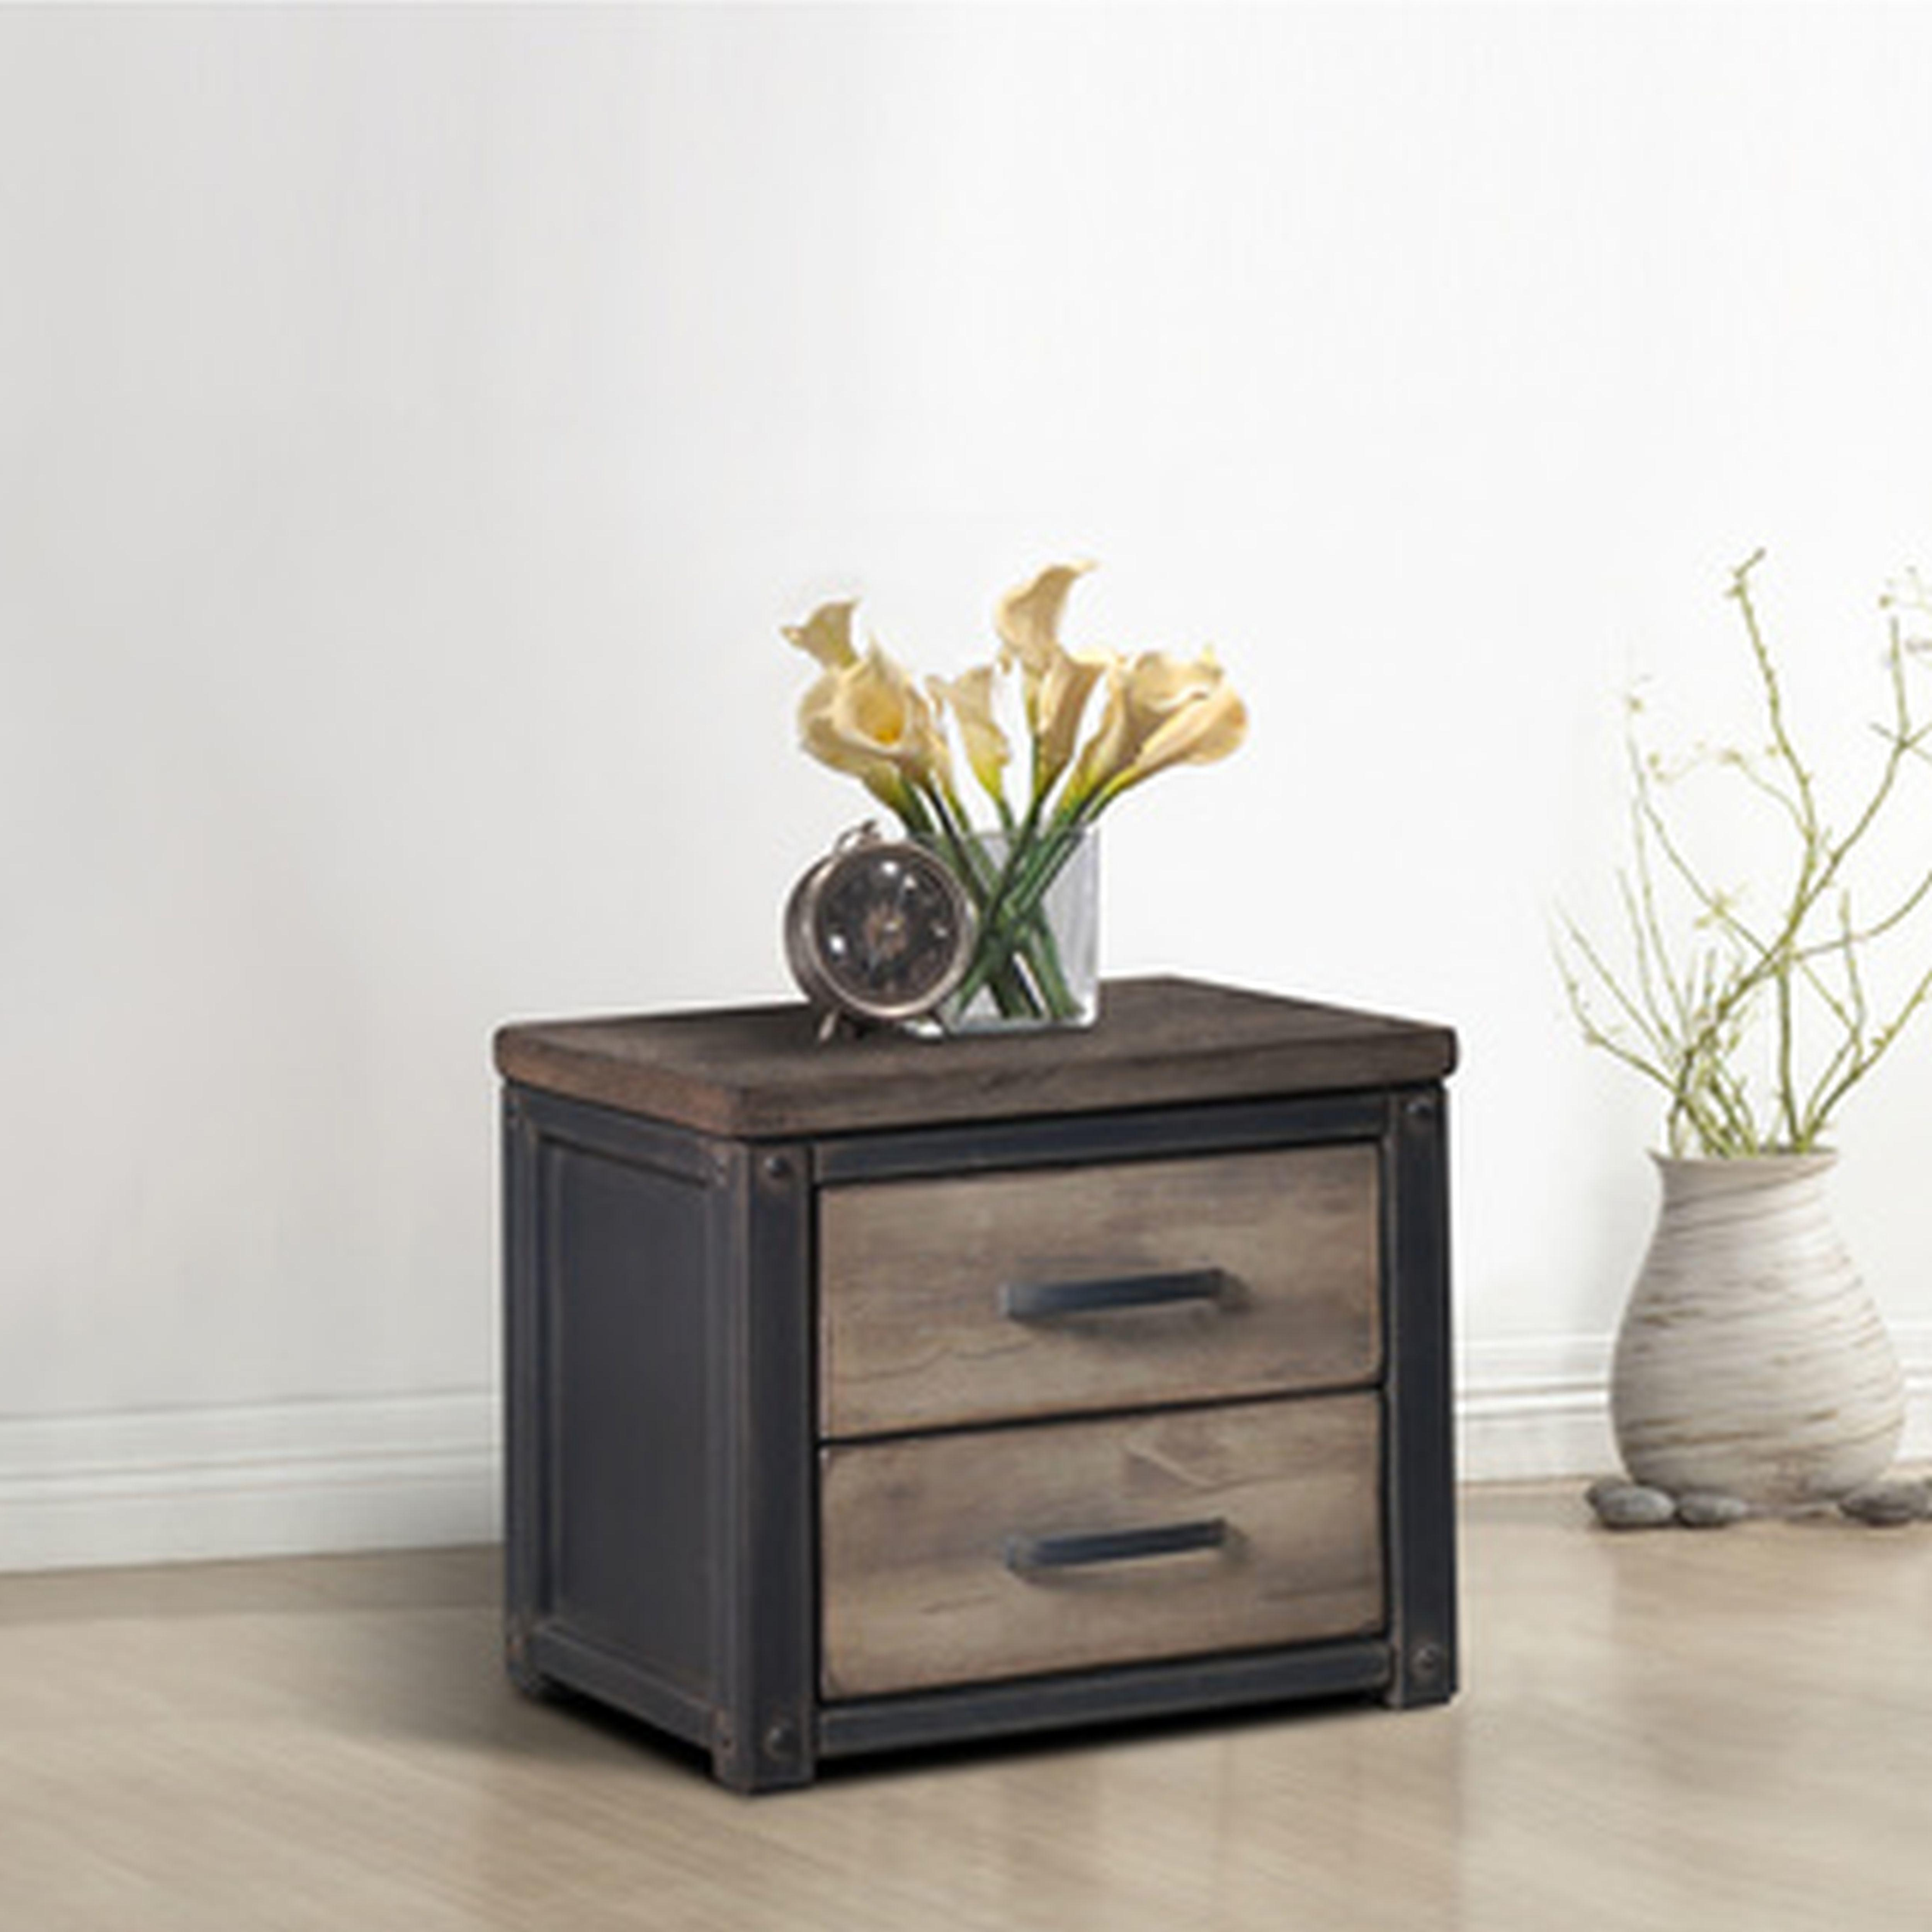 Unique Round Bedside Table Small Stand Modern Minimalist